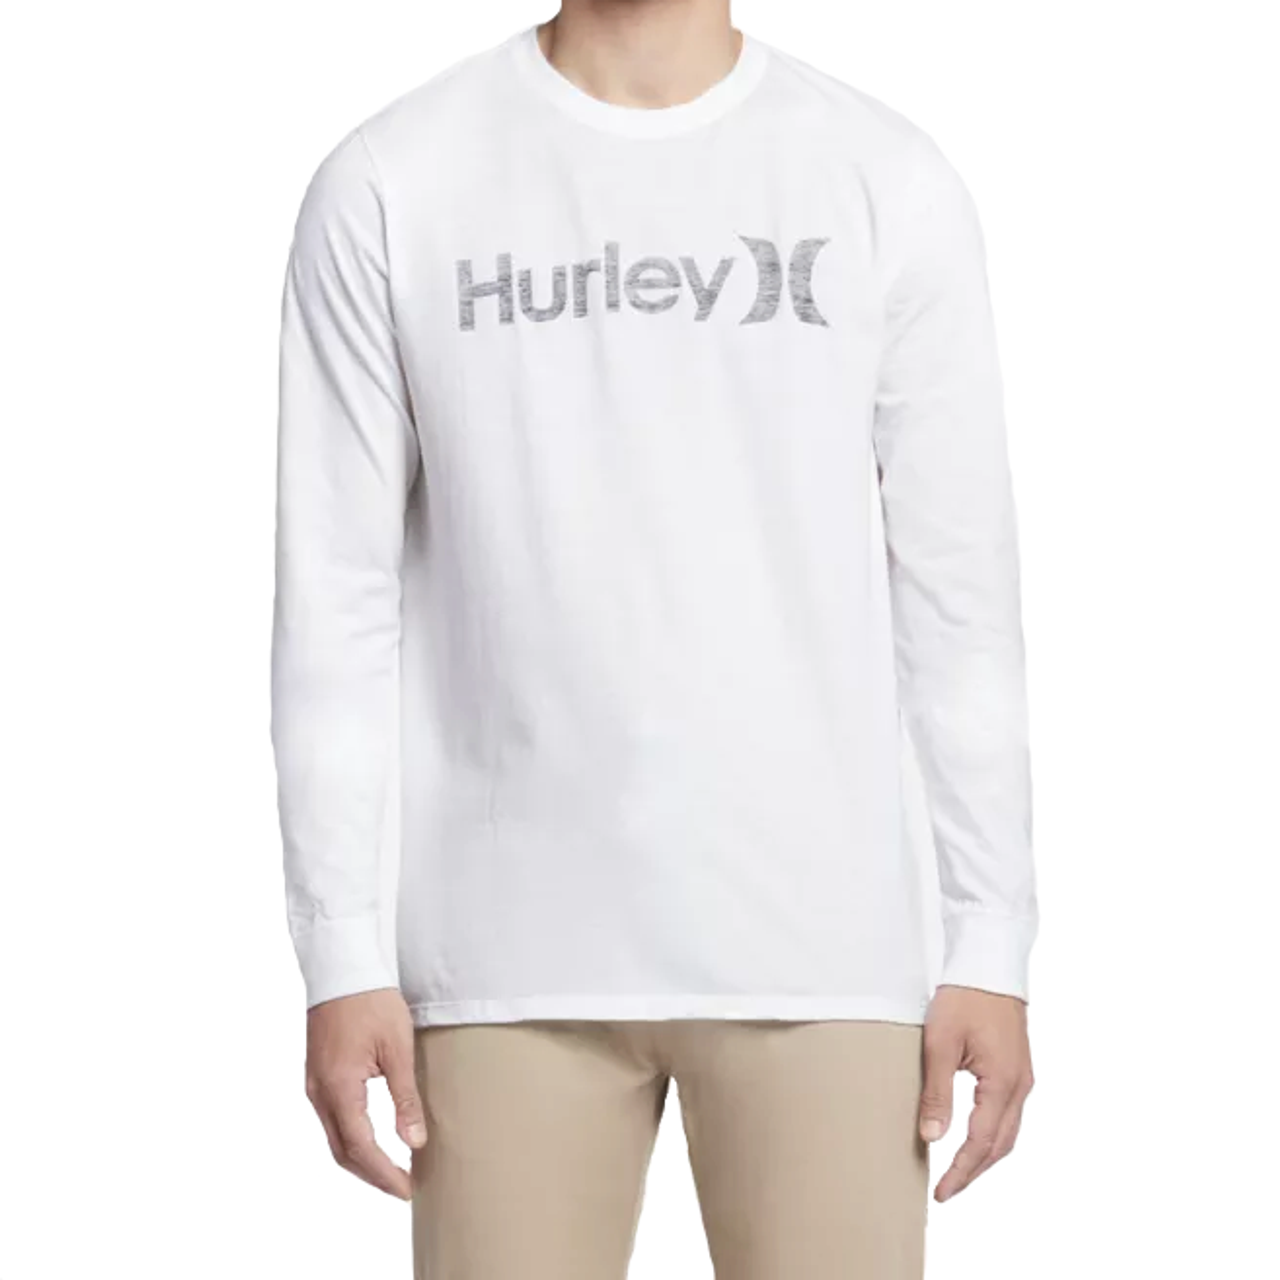 c8c2088e8b Hurley Shirt - One and Only Push Through Longsleeve - White/Black ...